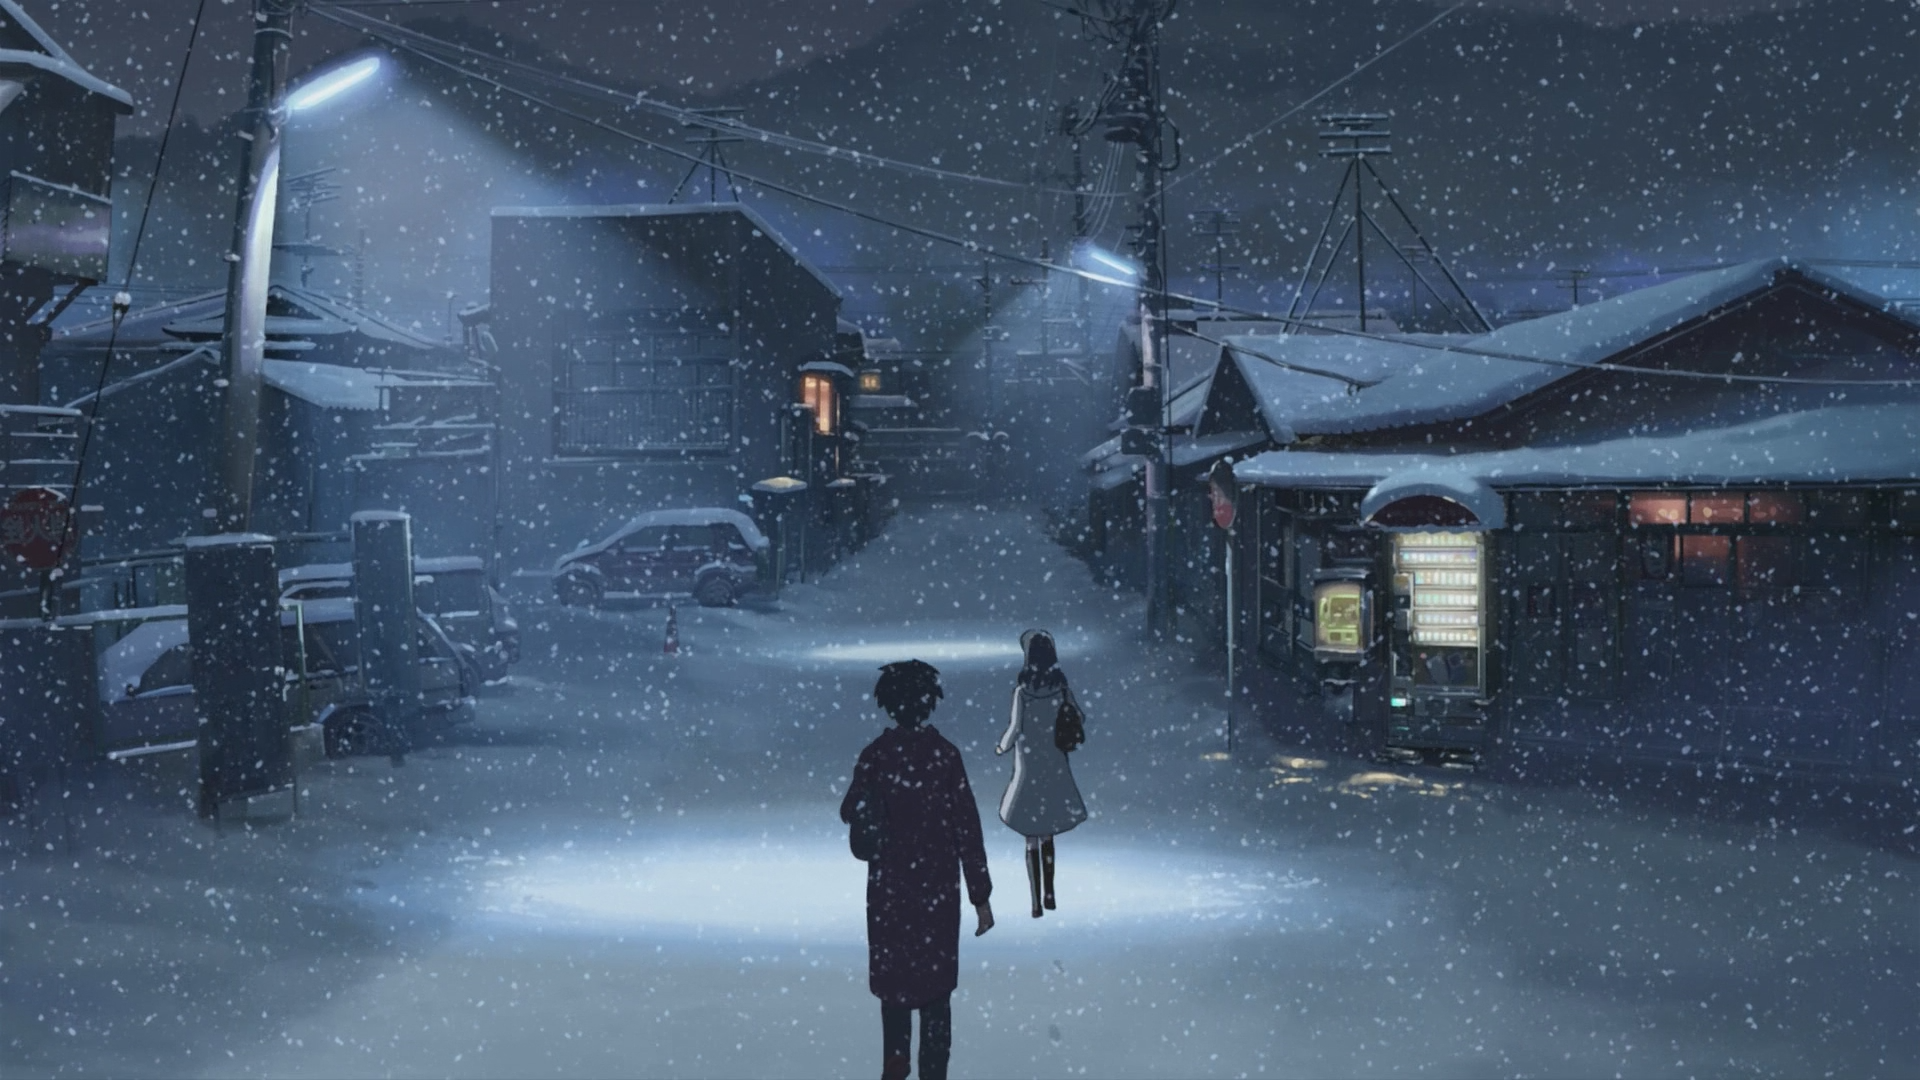 Free Download 5 Centimeters Per Second Backgrounds 1920x1080 For